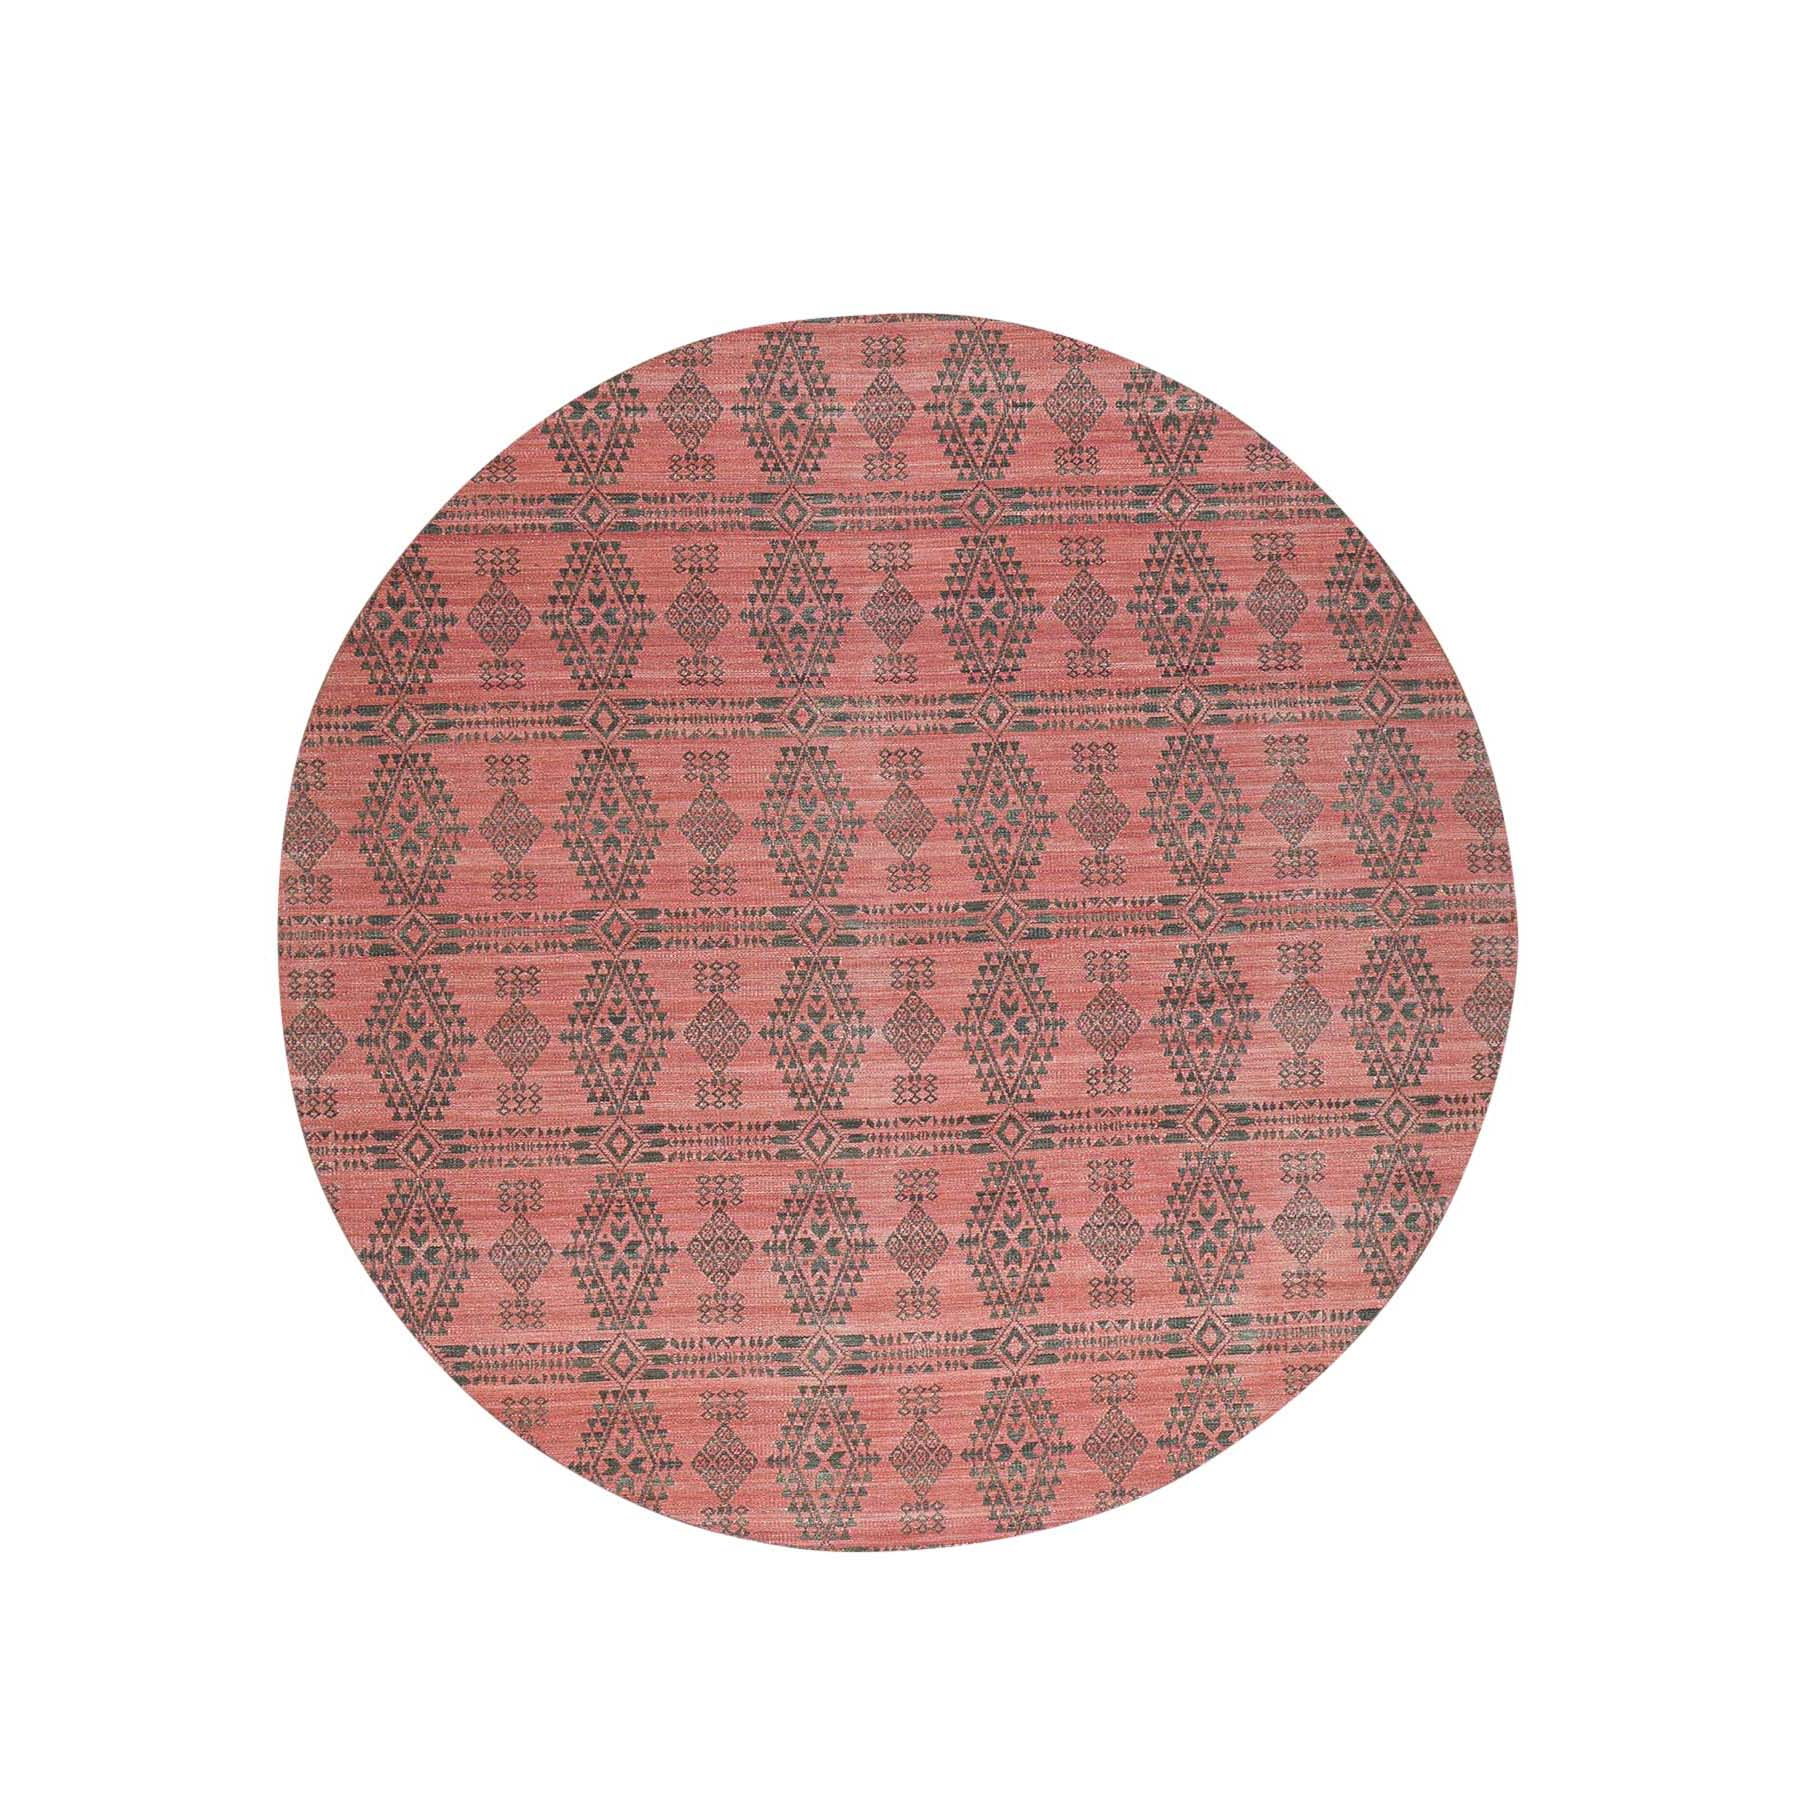 10'X10' Hand-Woven Reversible Kilim Flat Weave Round Oriental Rug moacdc7e